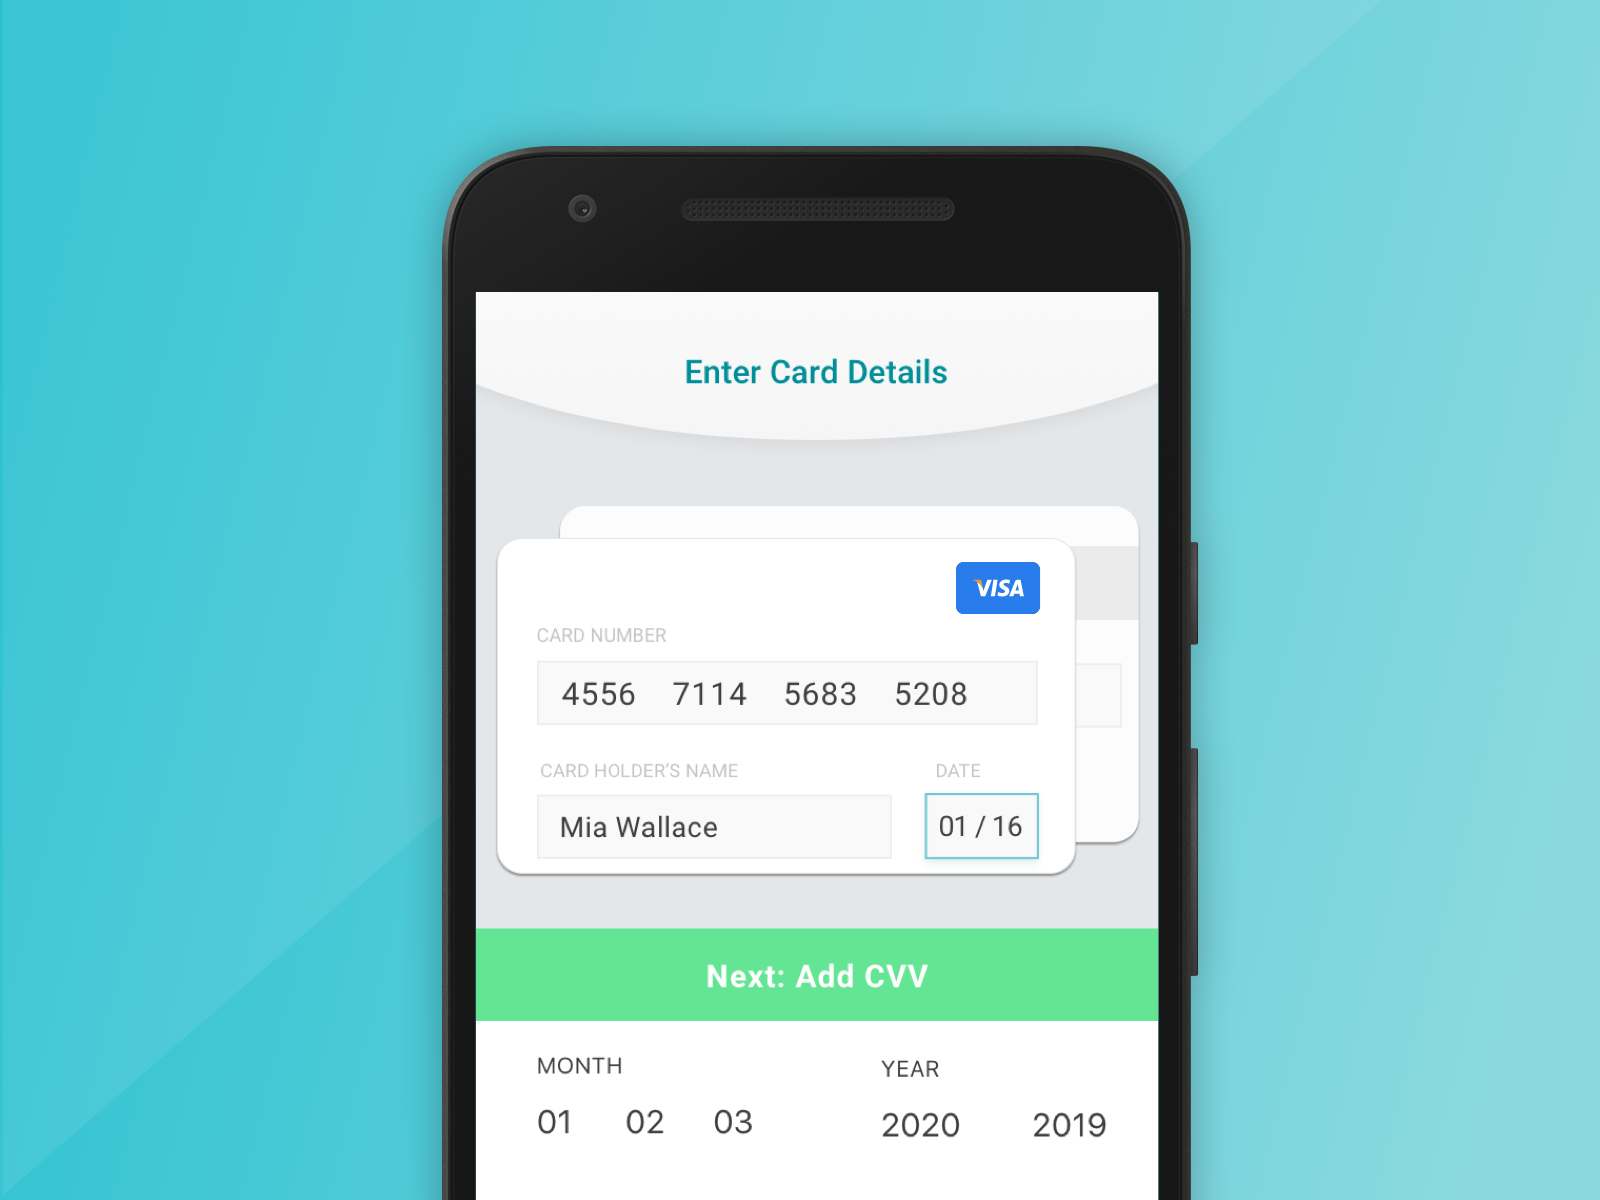 Going for a sleek UI and giving Android some love. For entering the CVV, I envision the two cards swapping places so the back card is now in the foreground.